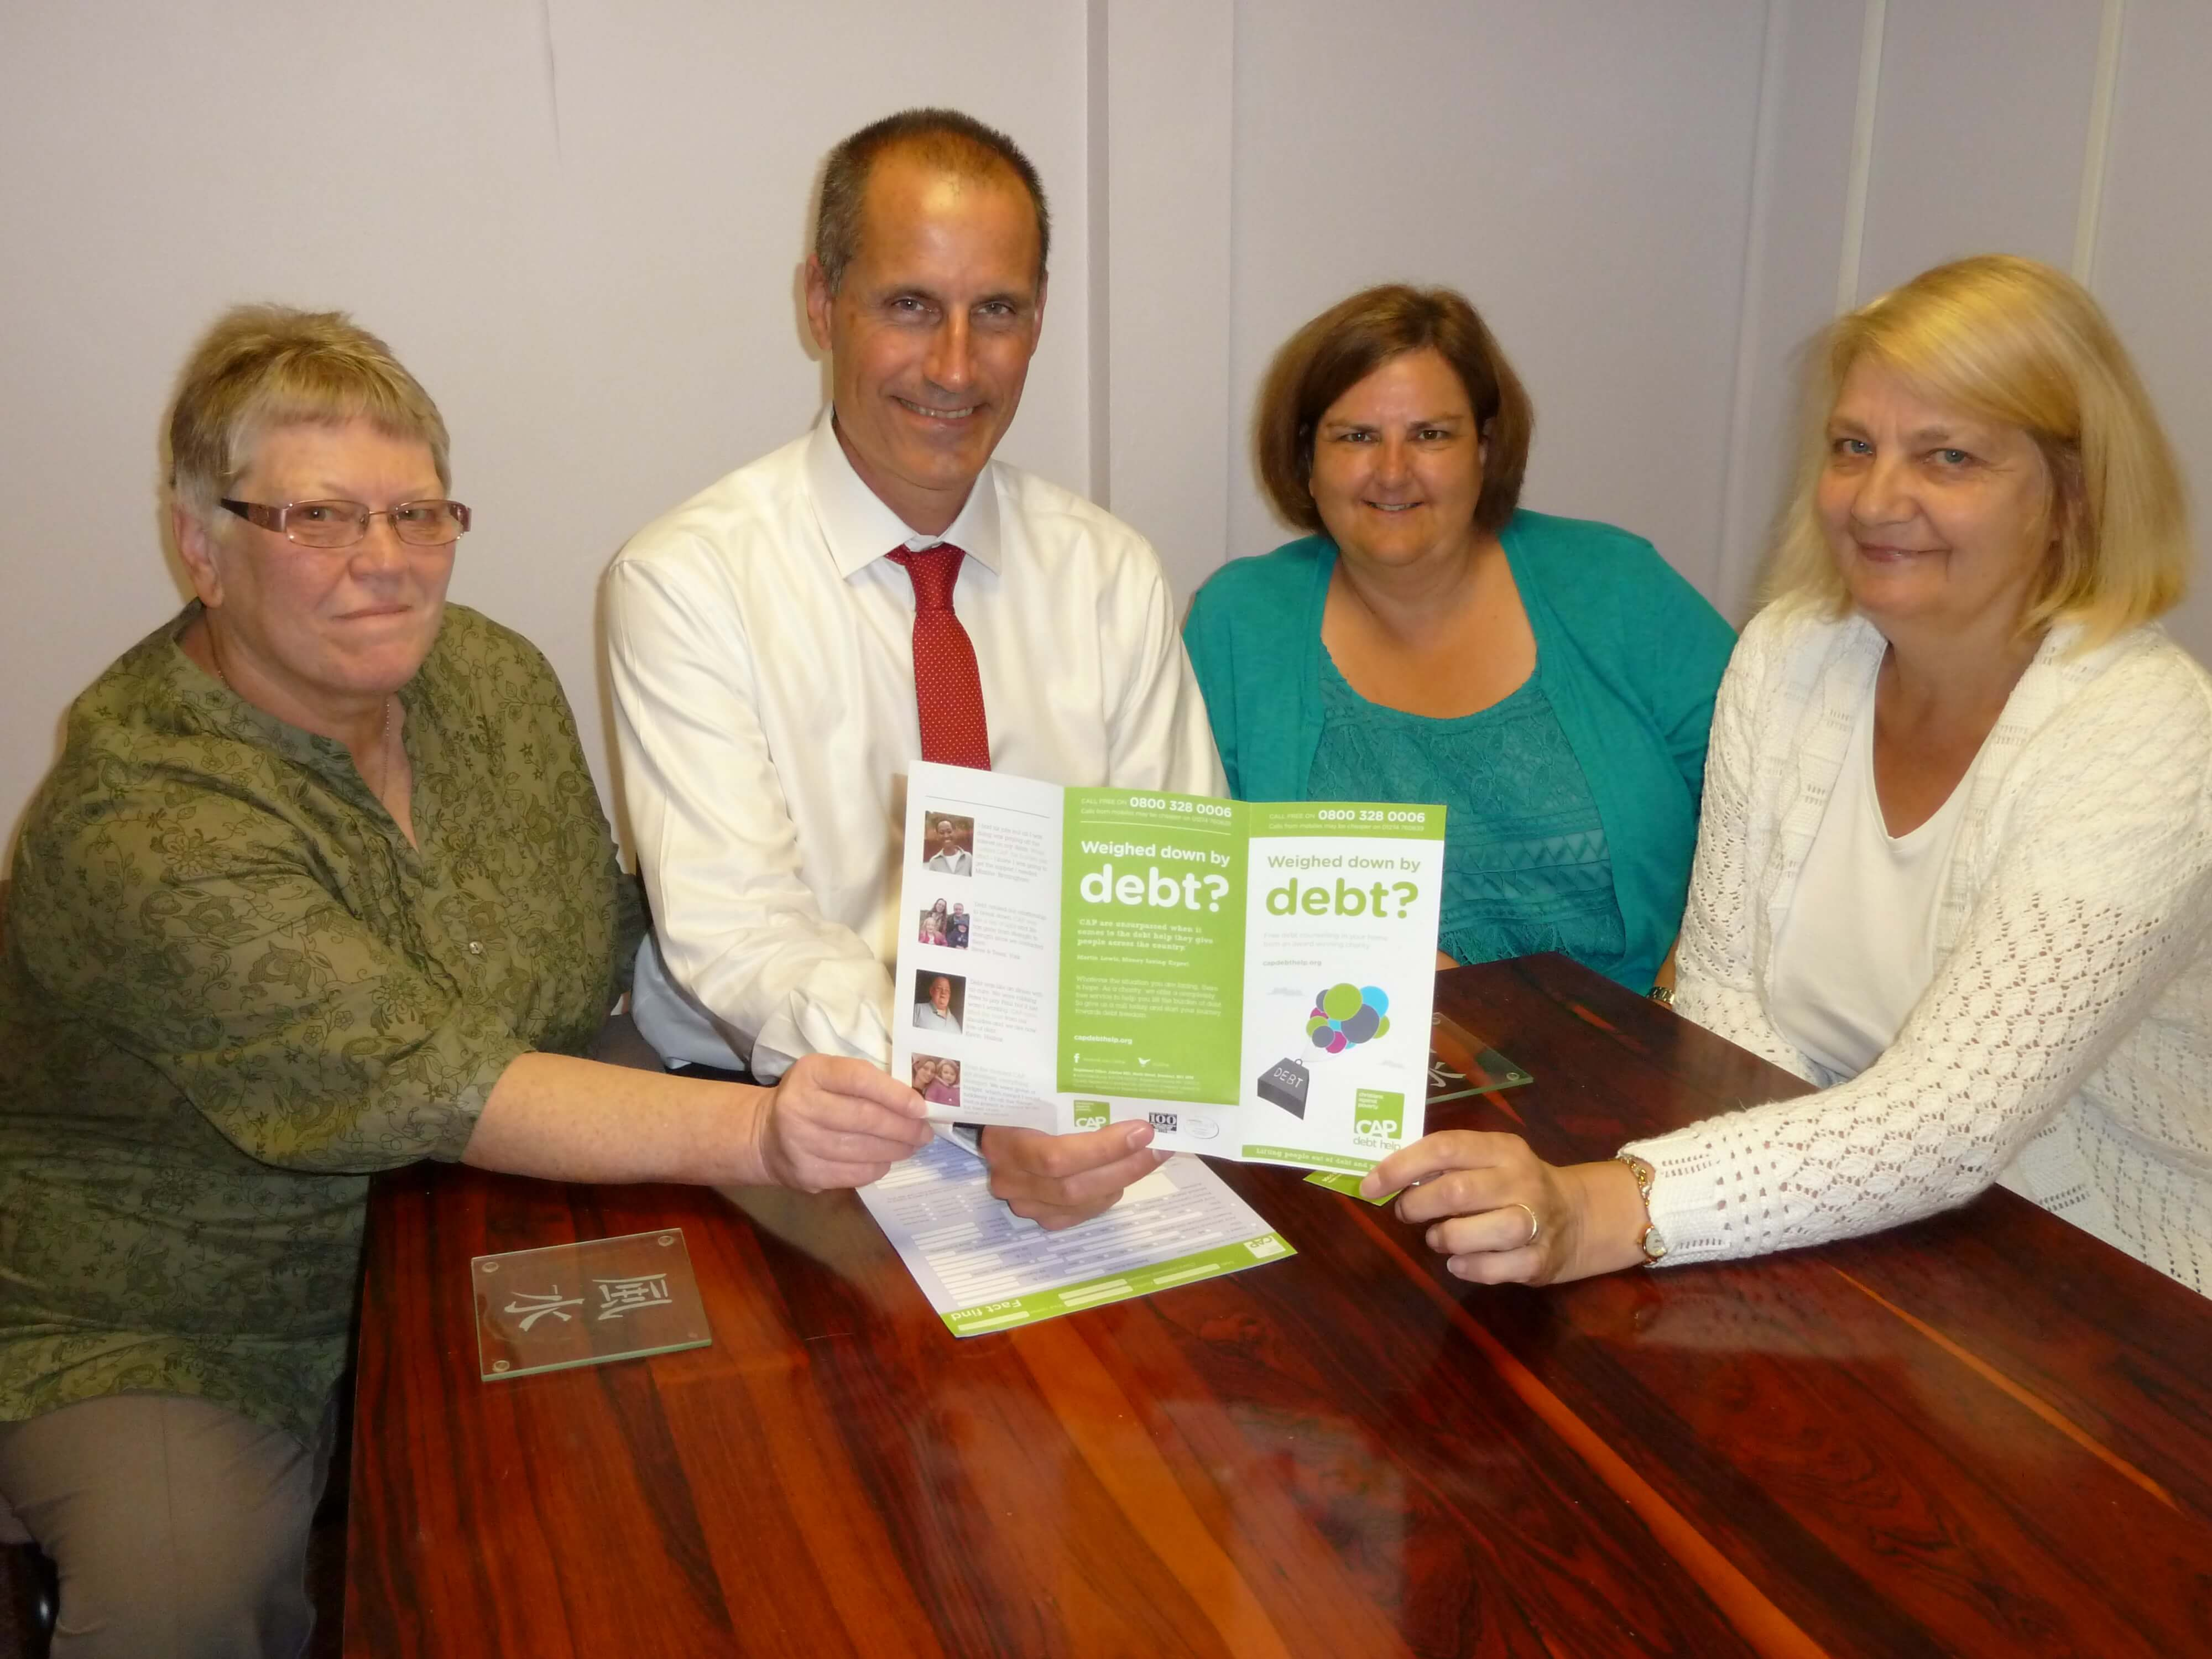 Sefton Central Labour's Bill Esterson talks about Christians Against Poverty's work in East Sefton with East Sefton counsellor Lynn Woods, Lynda Cooper who runs the CAP service in North Liverpool and South Sefton and debt coach Jean Beazley.